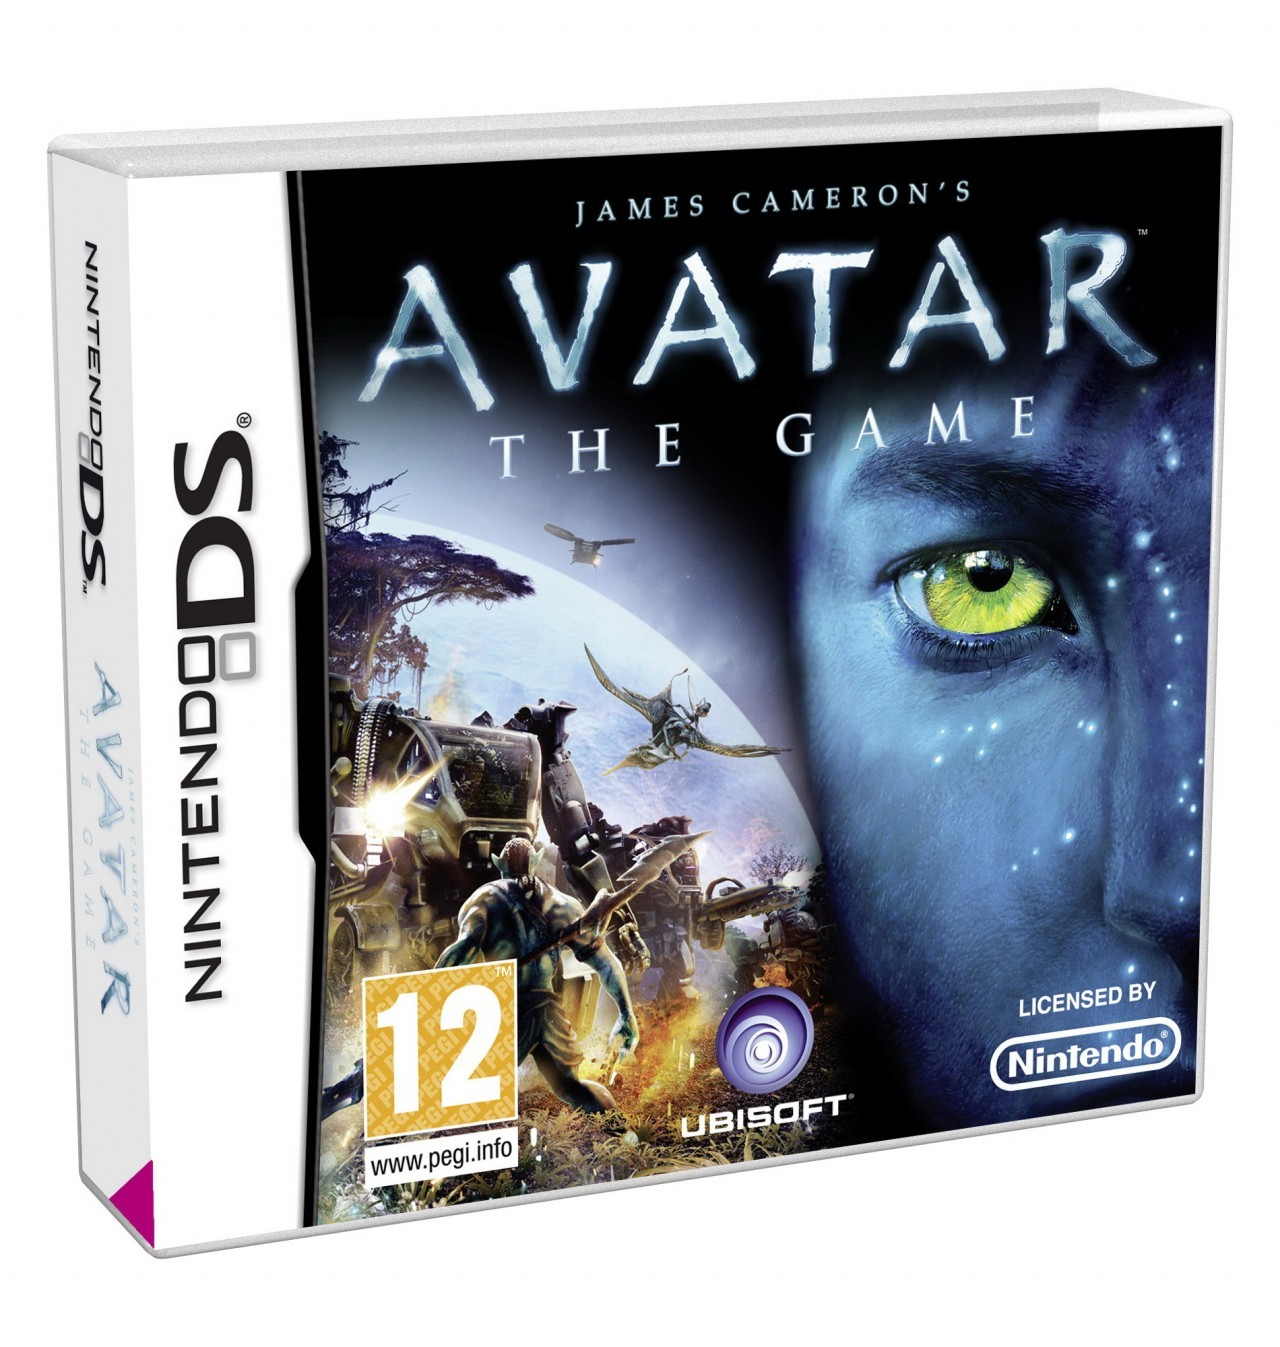 Jaquettes James Cameron's Avatar : The Game